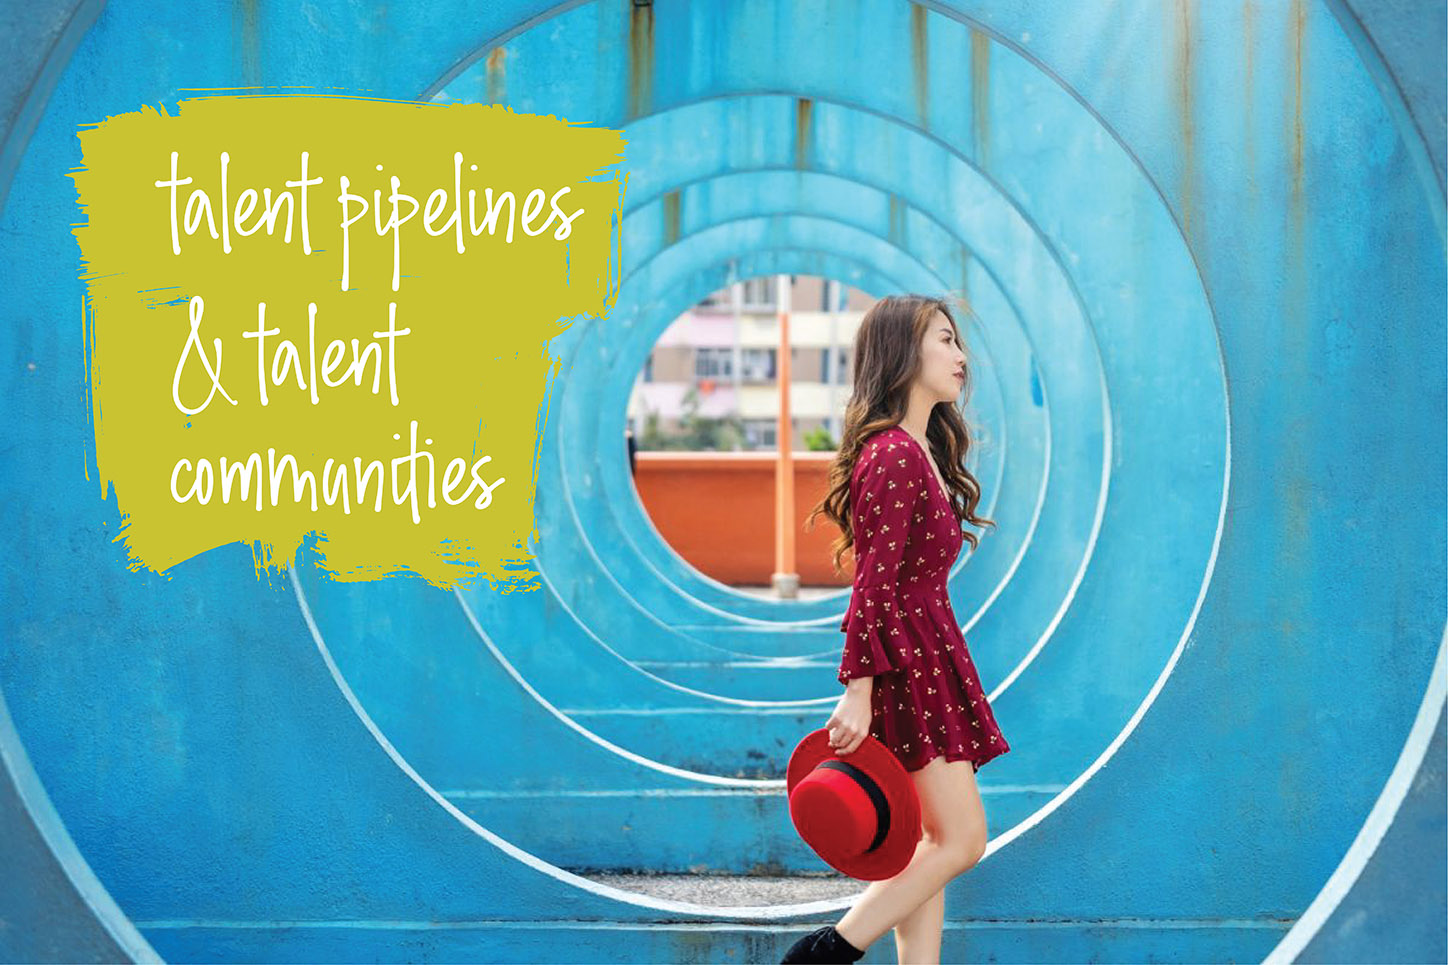 talent pipelines and talent communities SML.jpg